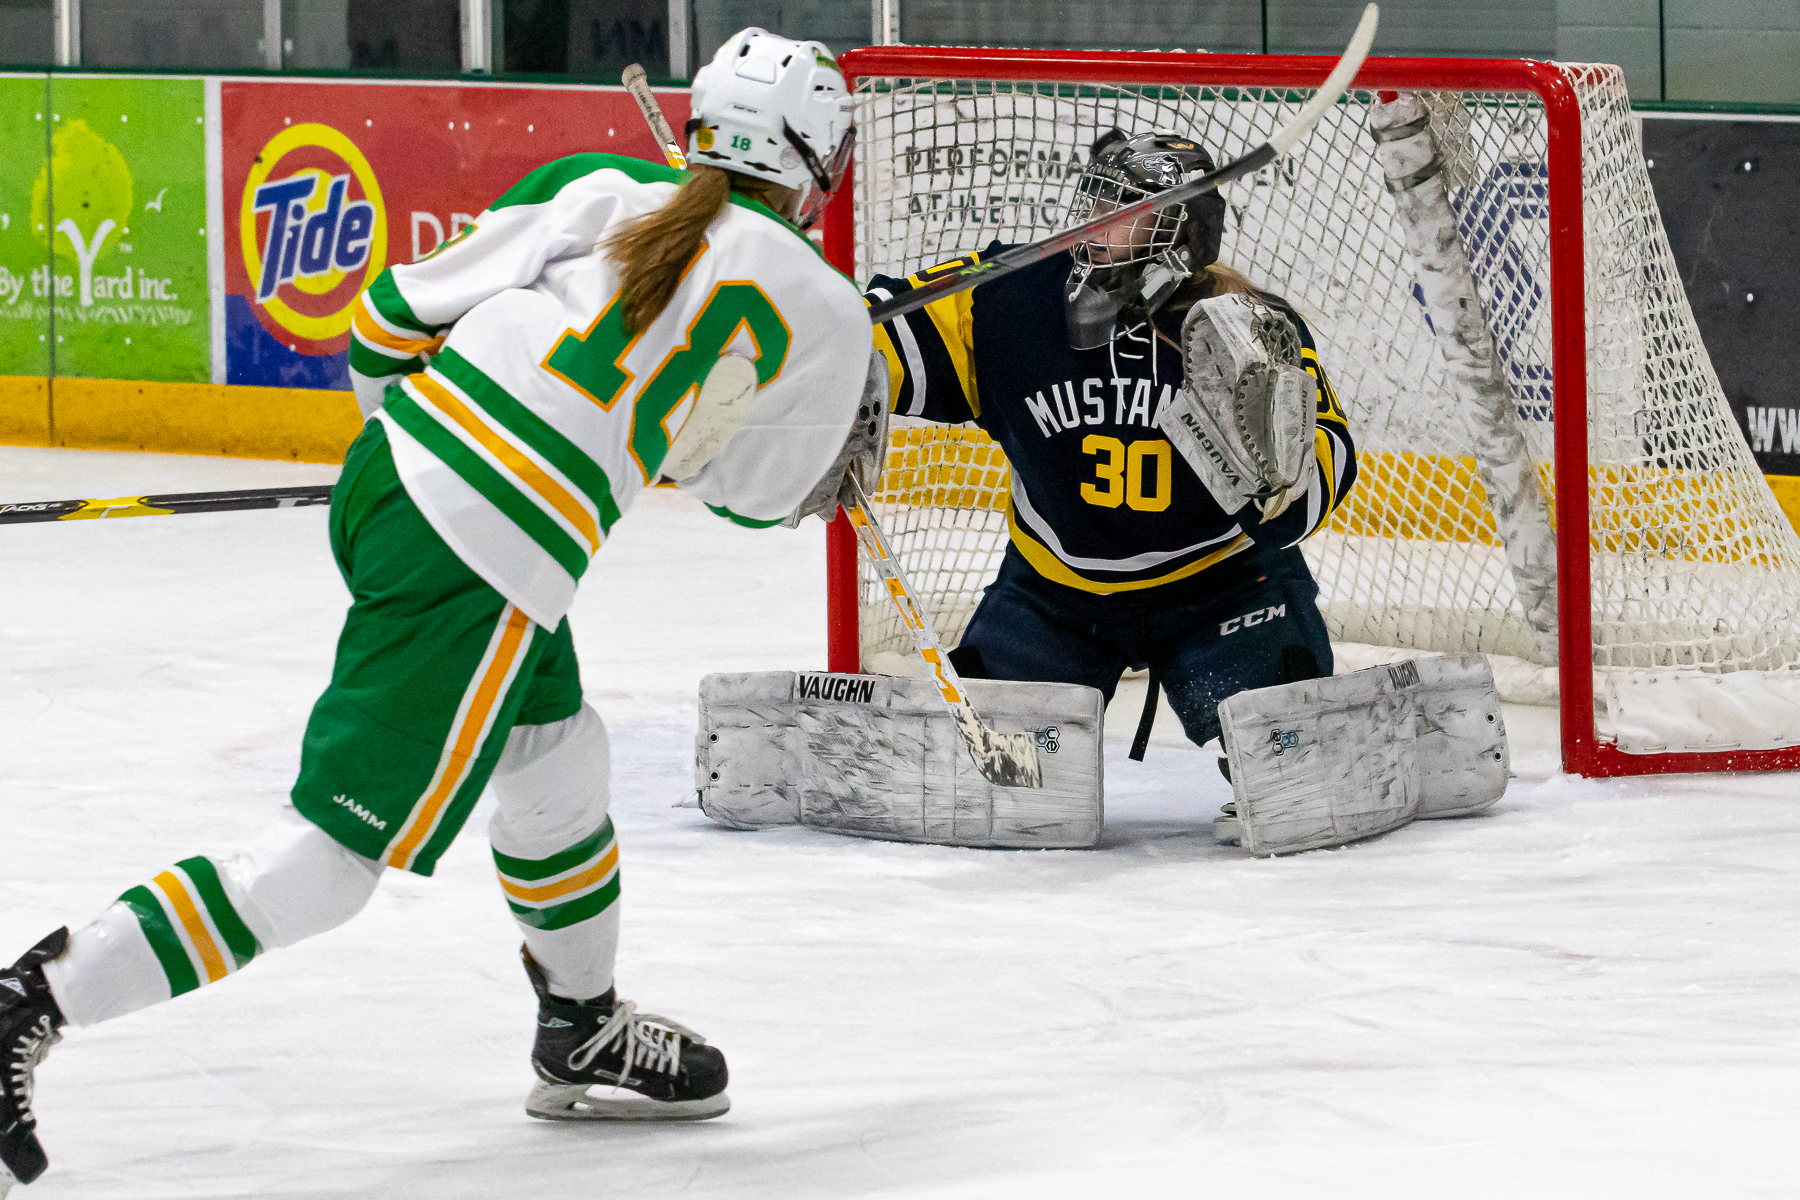 Edina forward Hannah Chorske fires a shot over the shoulder of Breck goalie Sarah Peterson in the first period. Chorske had four points in the Hornets' 6-1 defeat of the Mustangs Tuesday night in Edina. Photo by Gary Mukai, SportsEngine